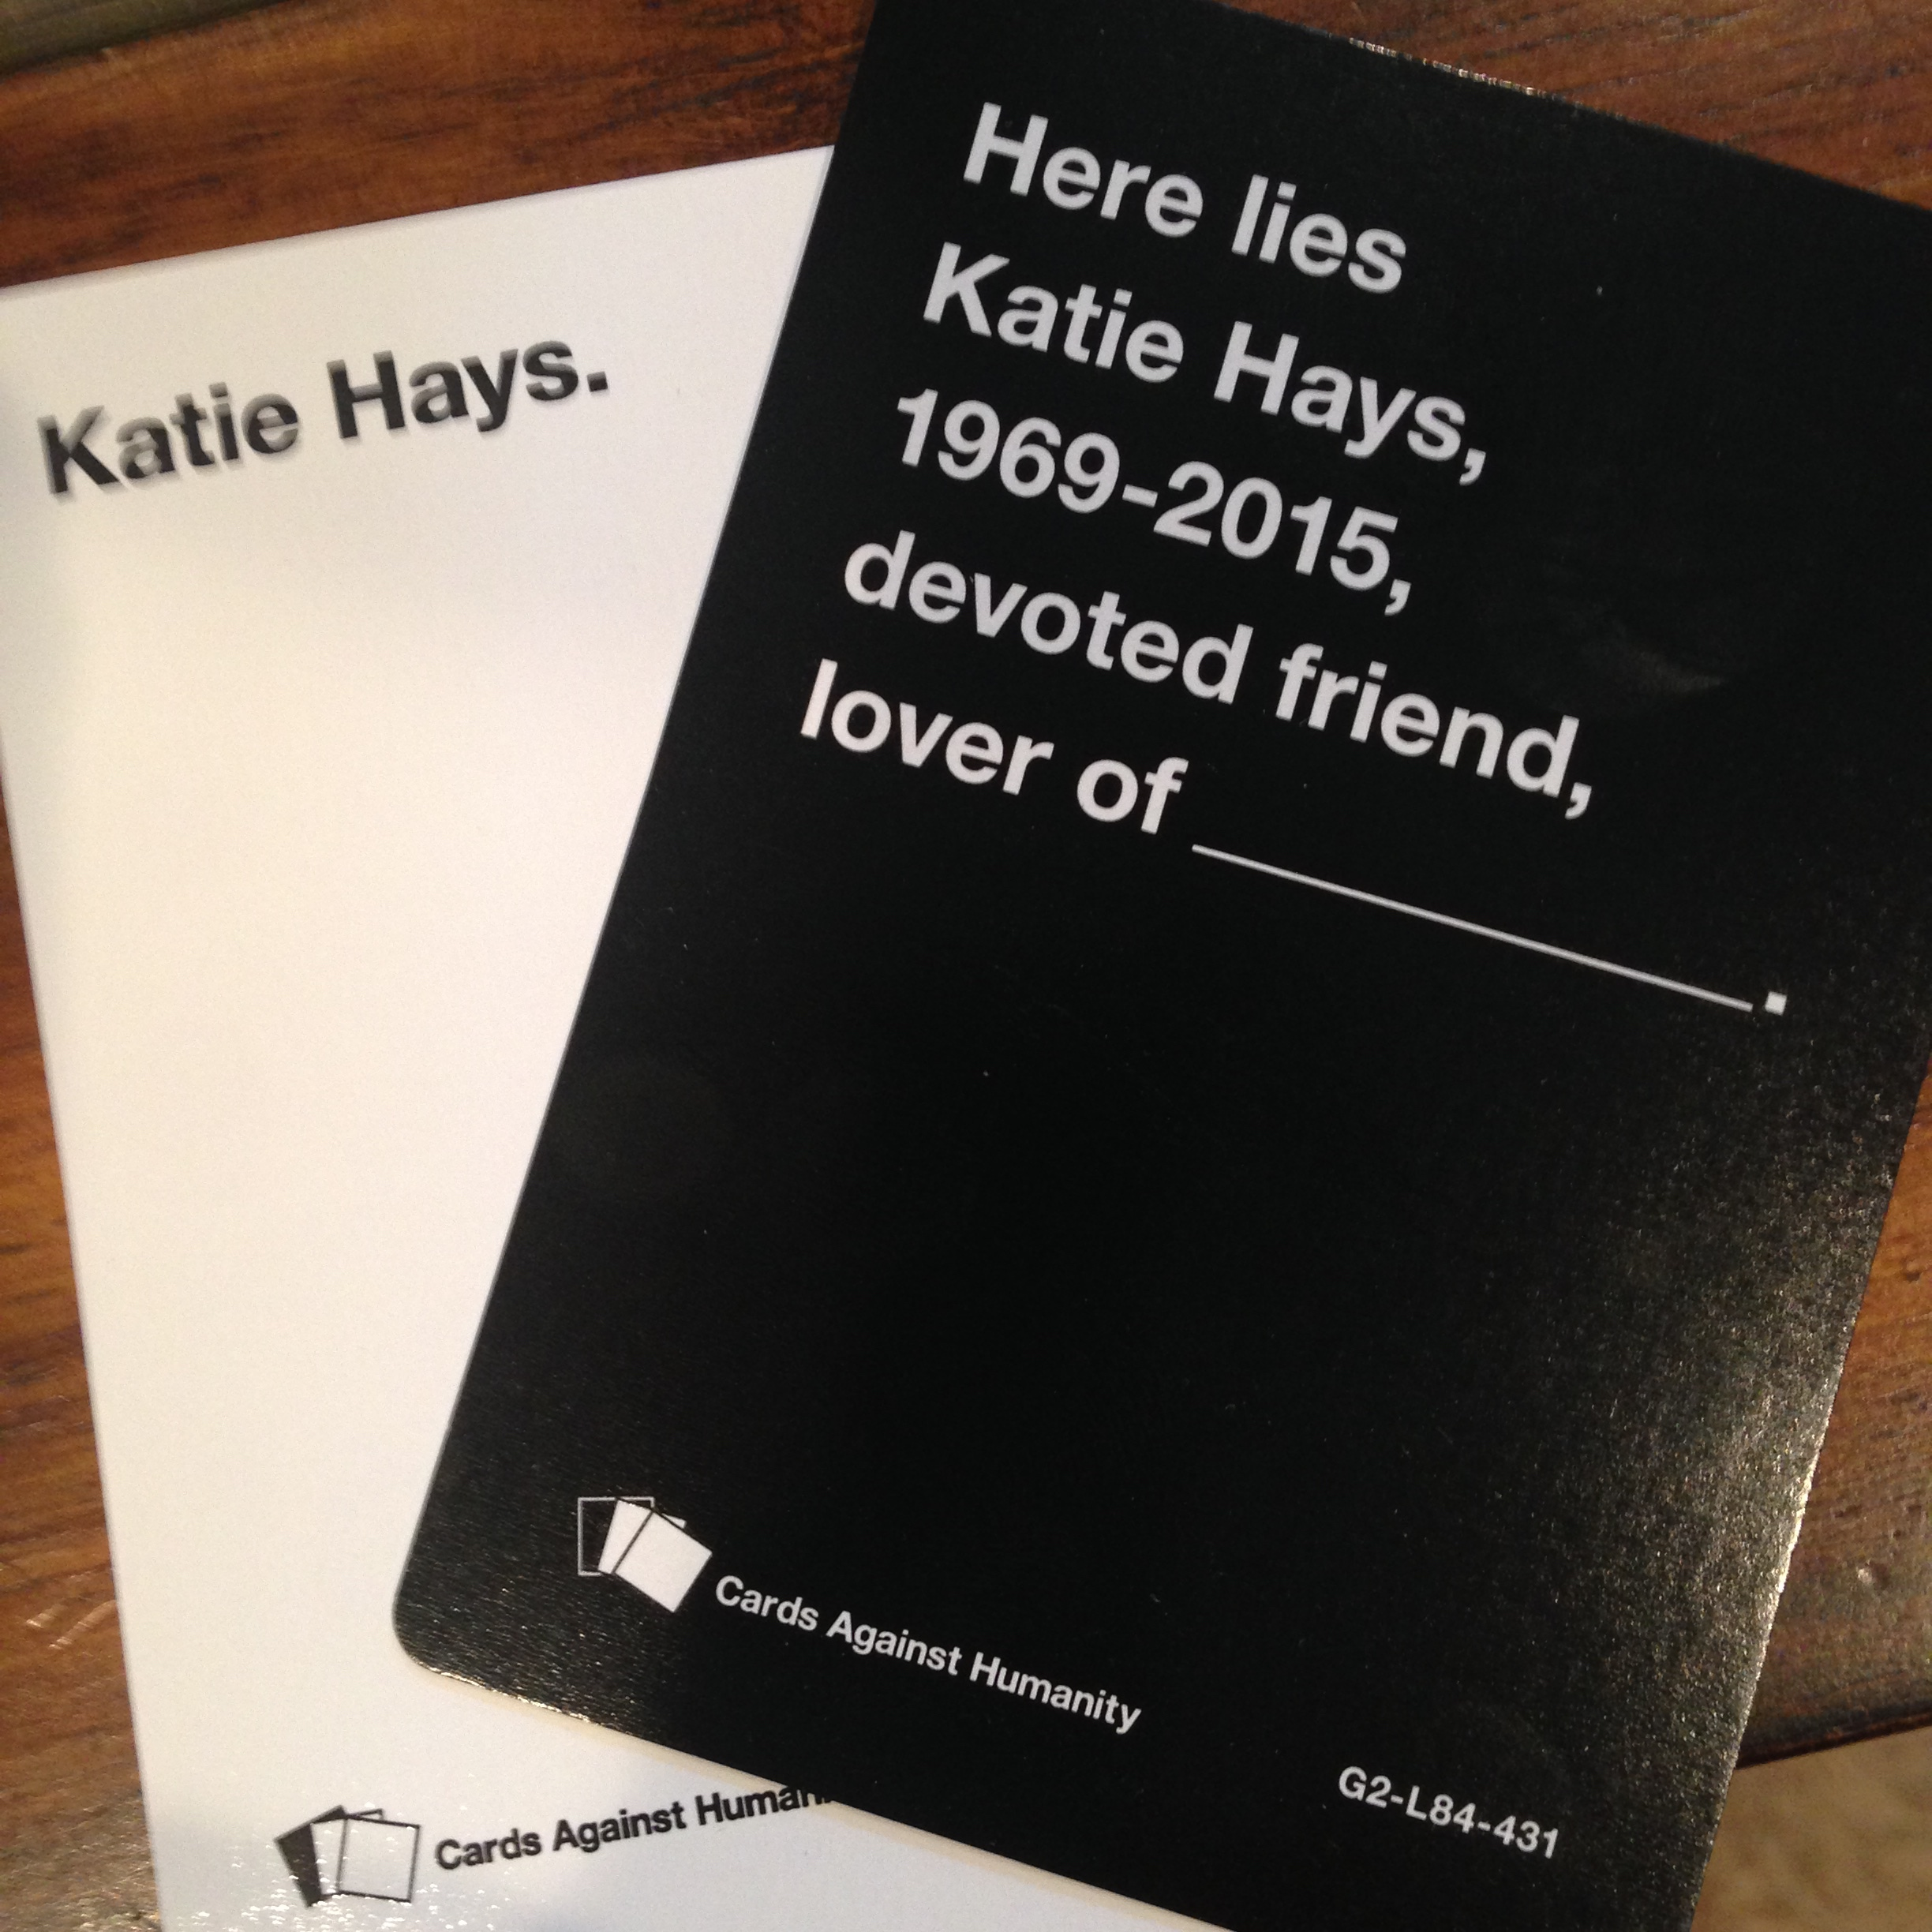 The pastor's very own personalized Cards Against Humanity.